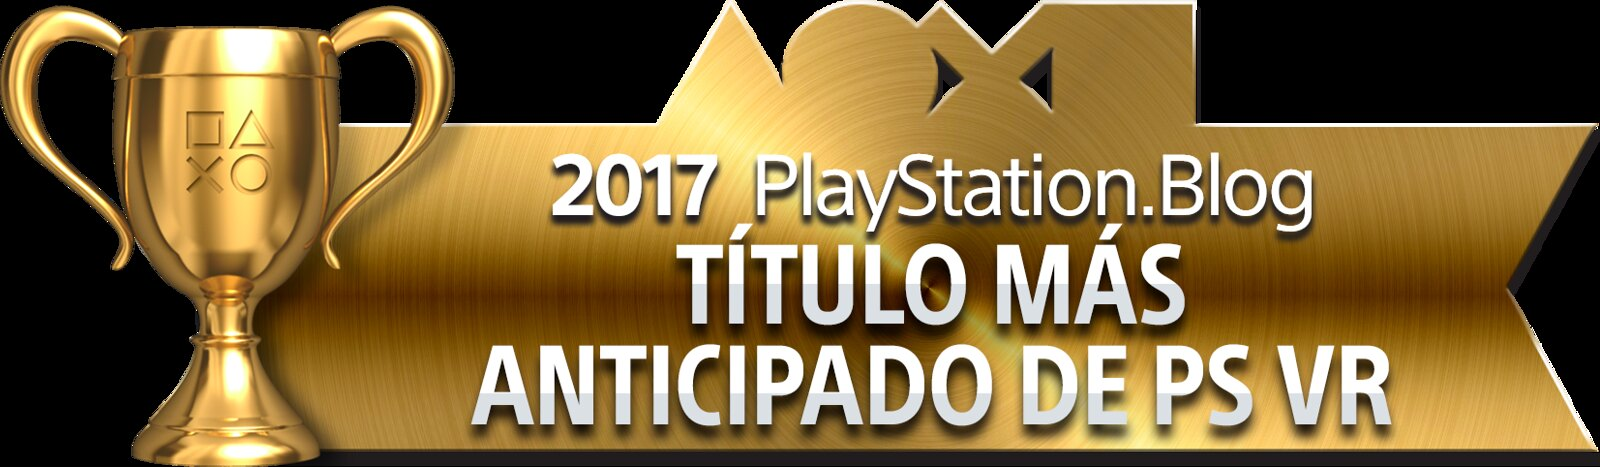 PlayStation Blog Game of the Year 2017 - Most Anticipated PS VR Title (Gold)